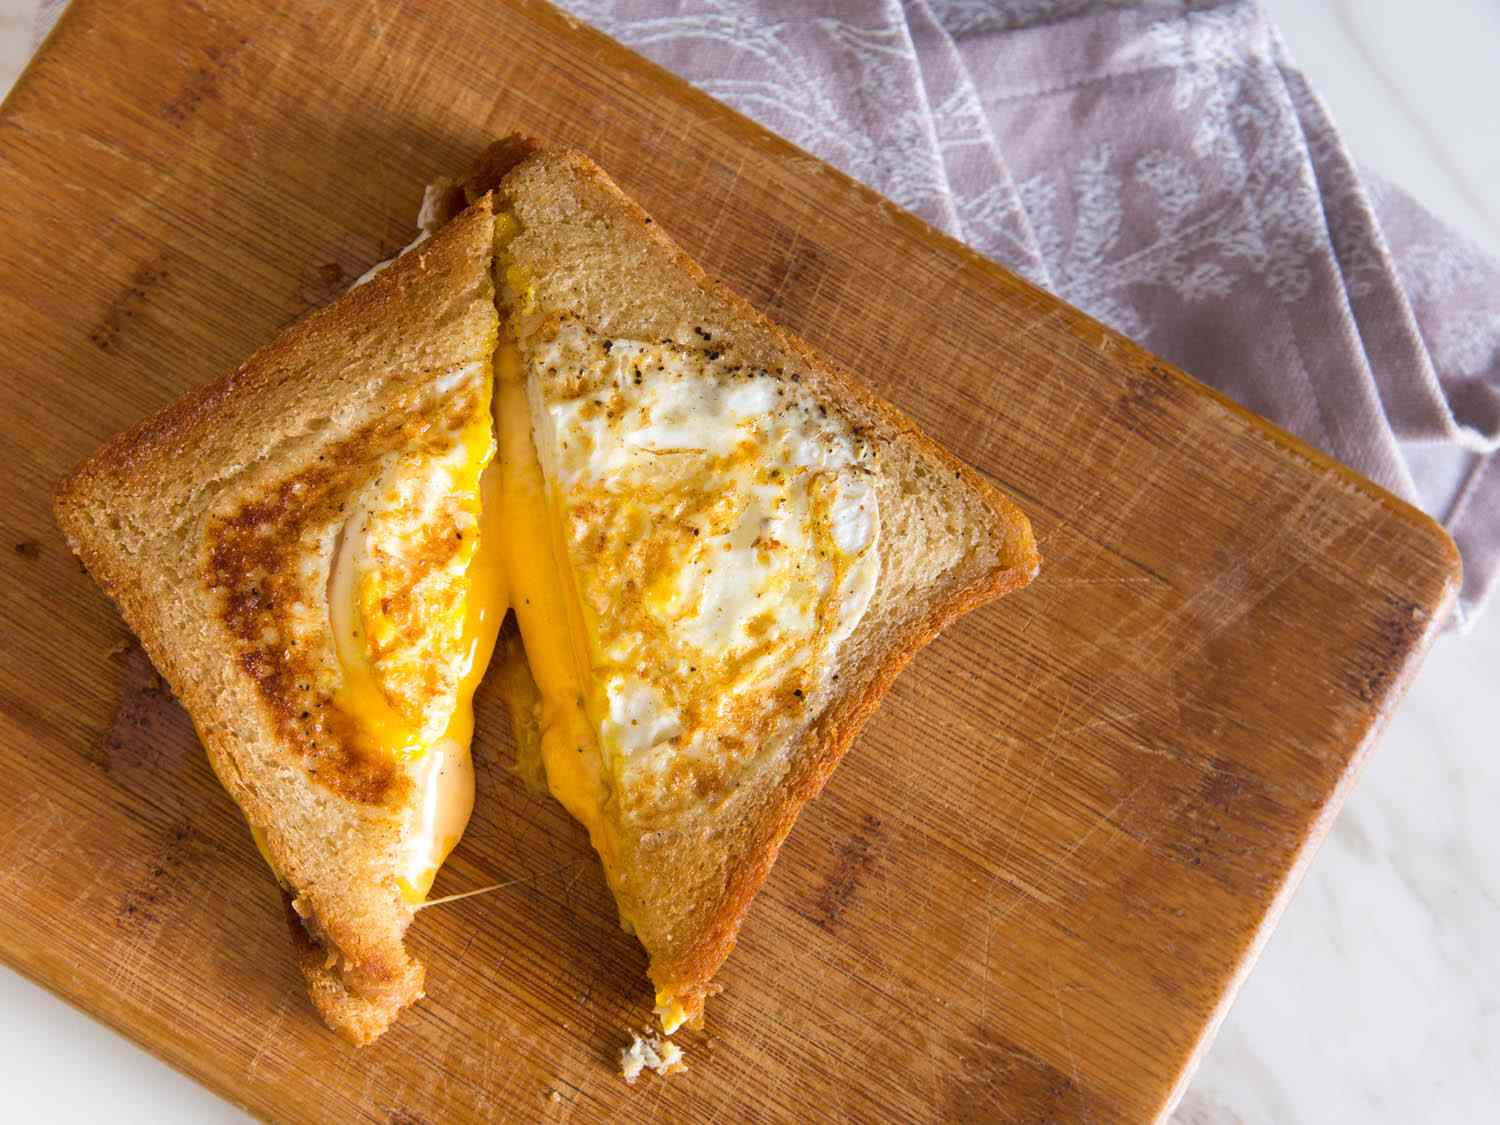 20150219-grilled-egg-in-a-hole-cheese-vicky-wasik-1.jpg